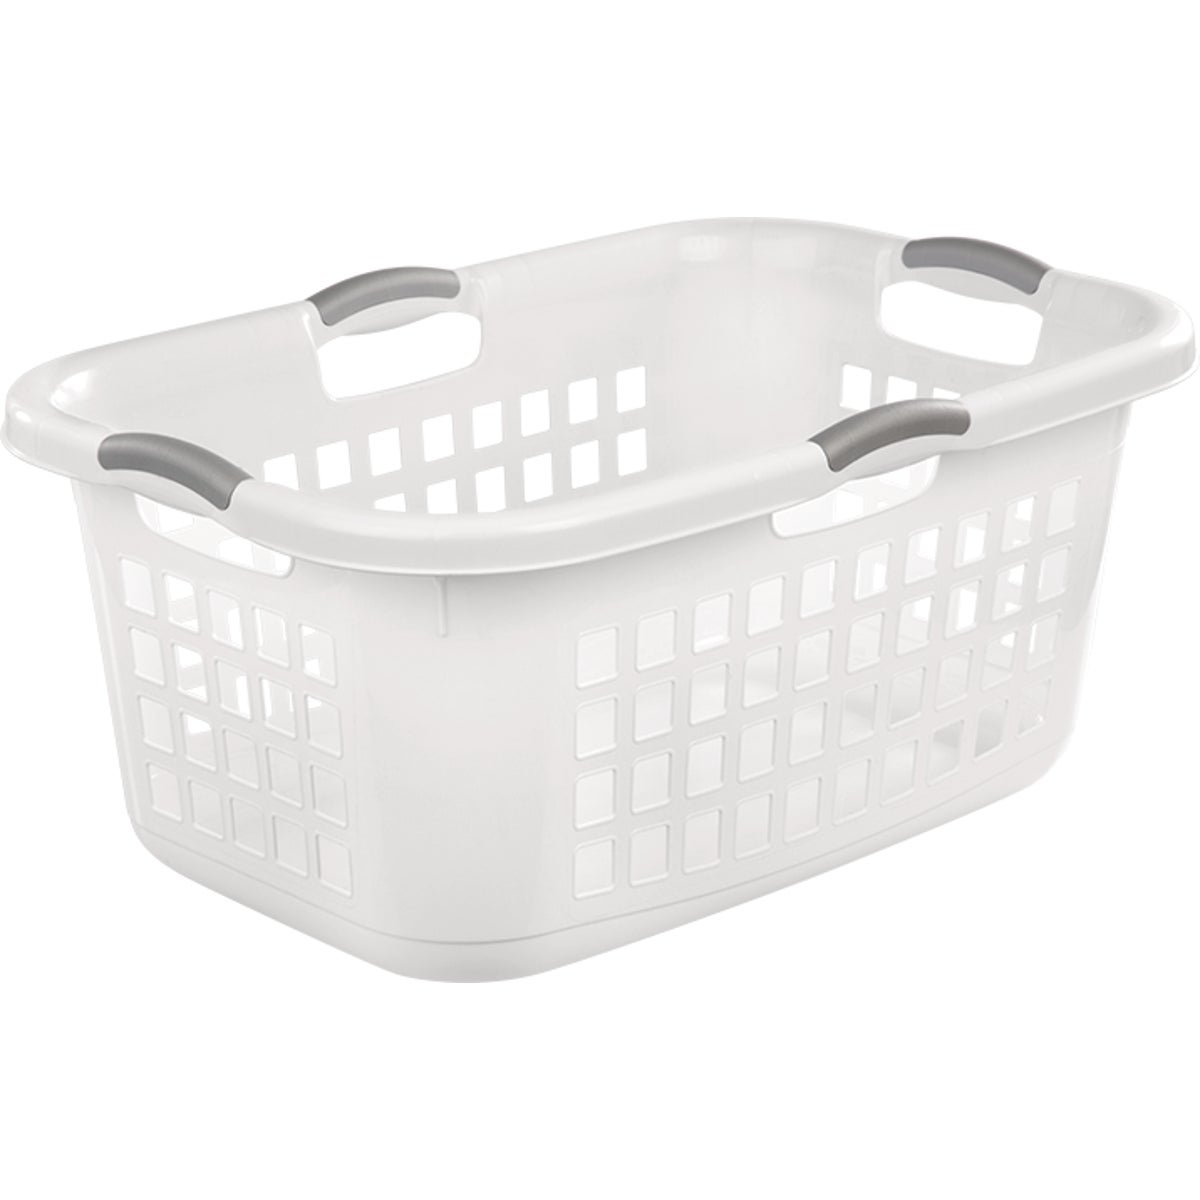 2 BU LAUNDRY BASKET - 12158006 by Sterilite Corp